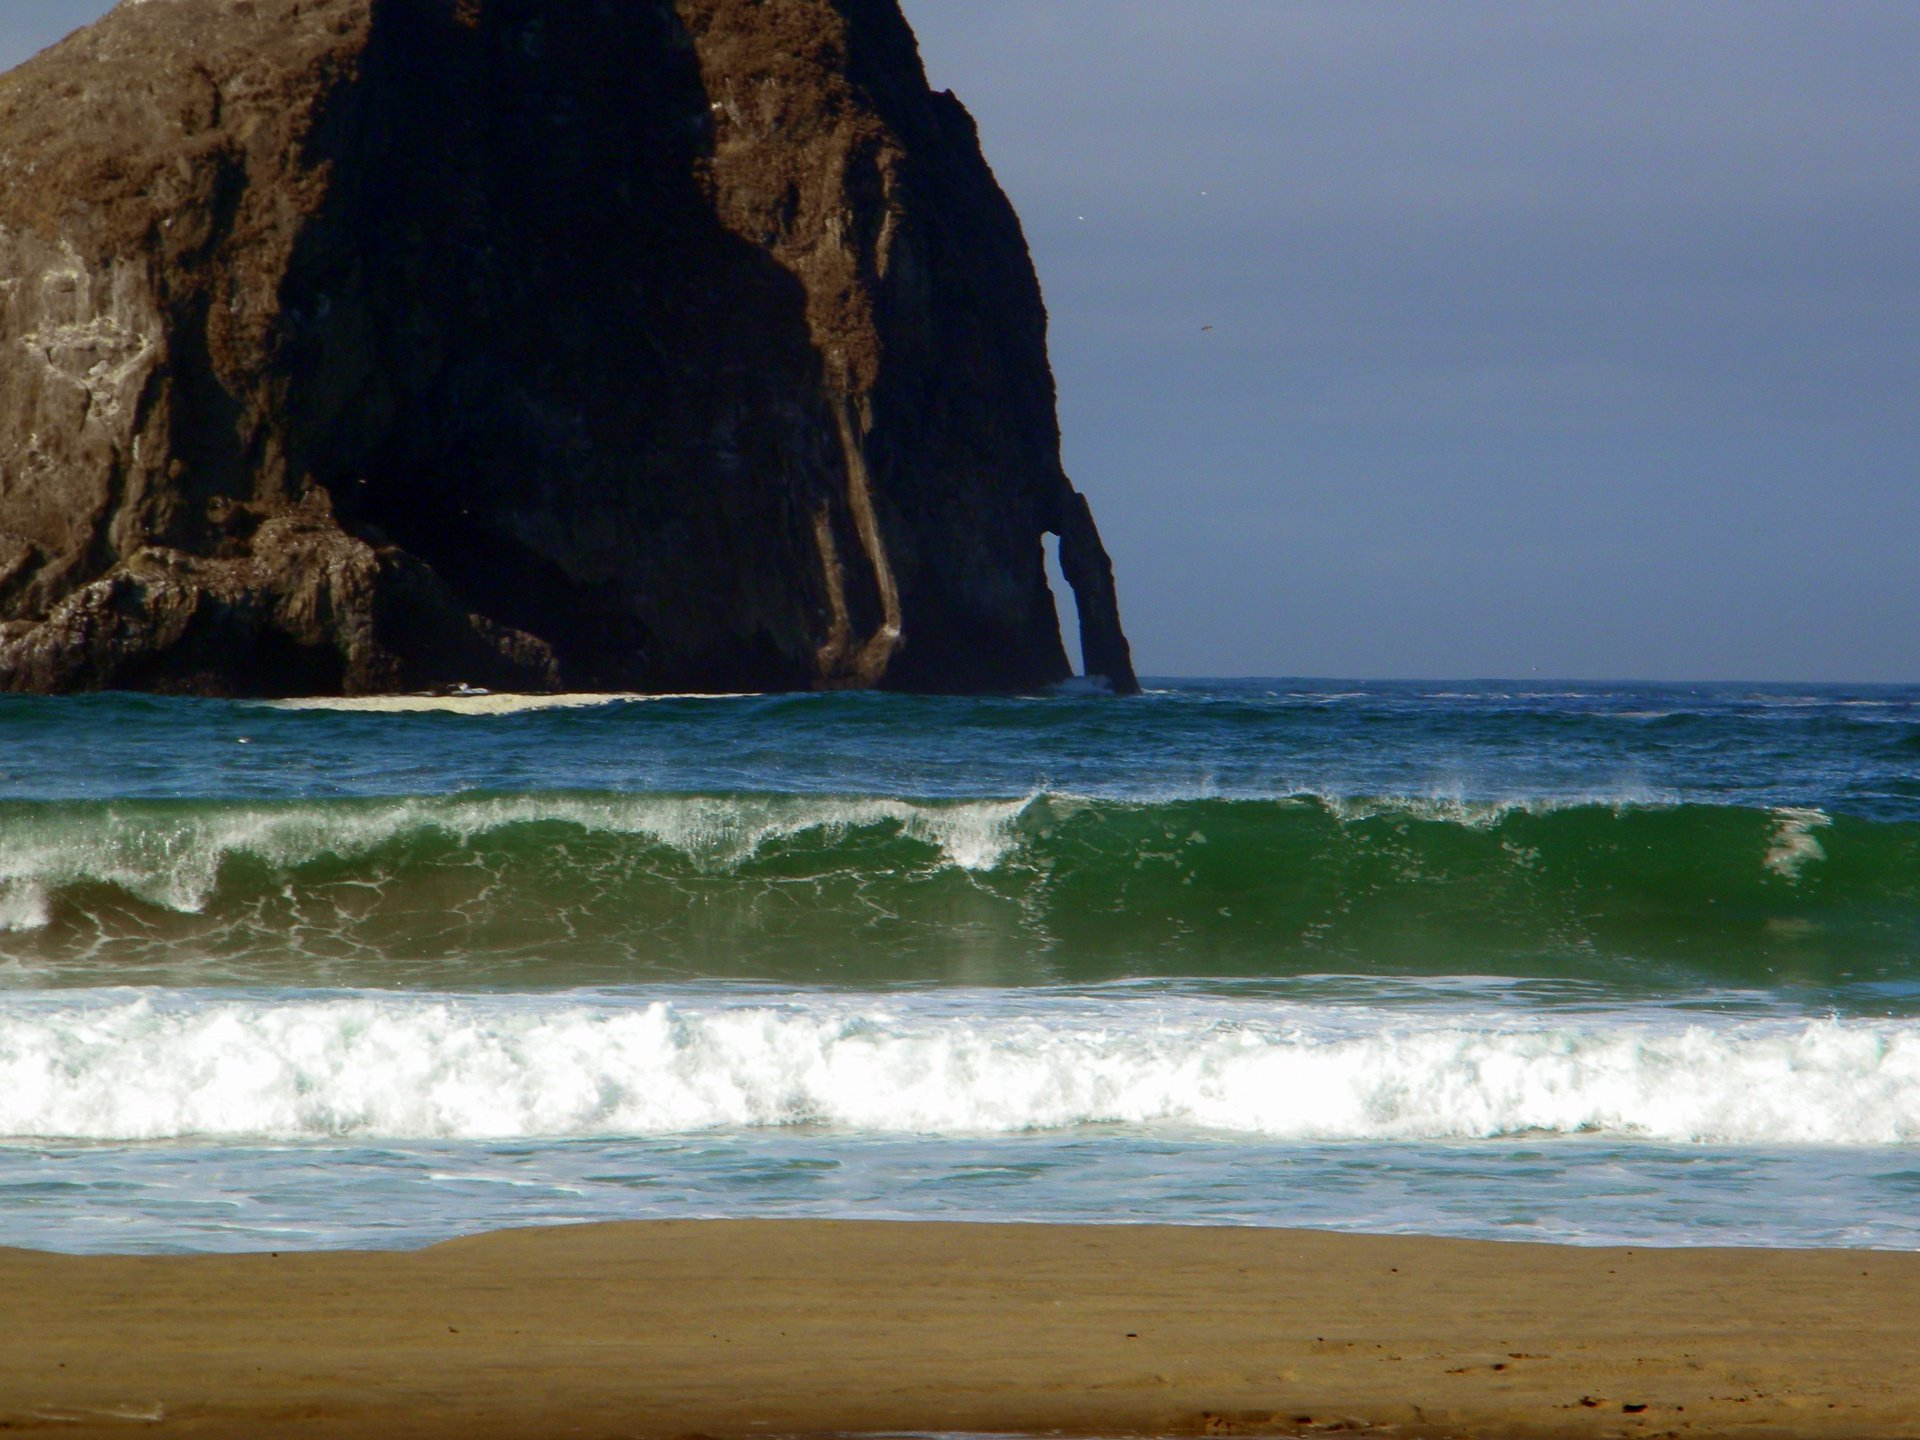 Tallinucci's photo of Cape Kiwanda